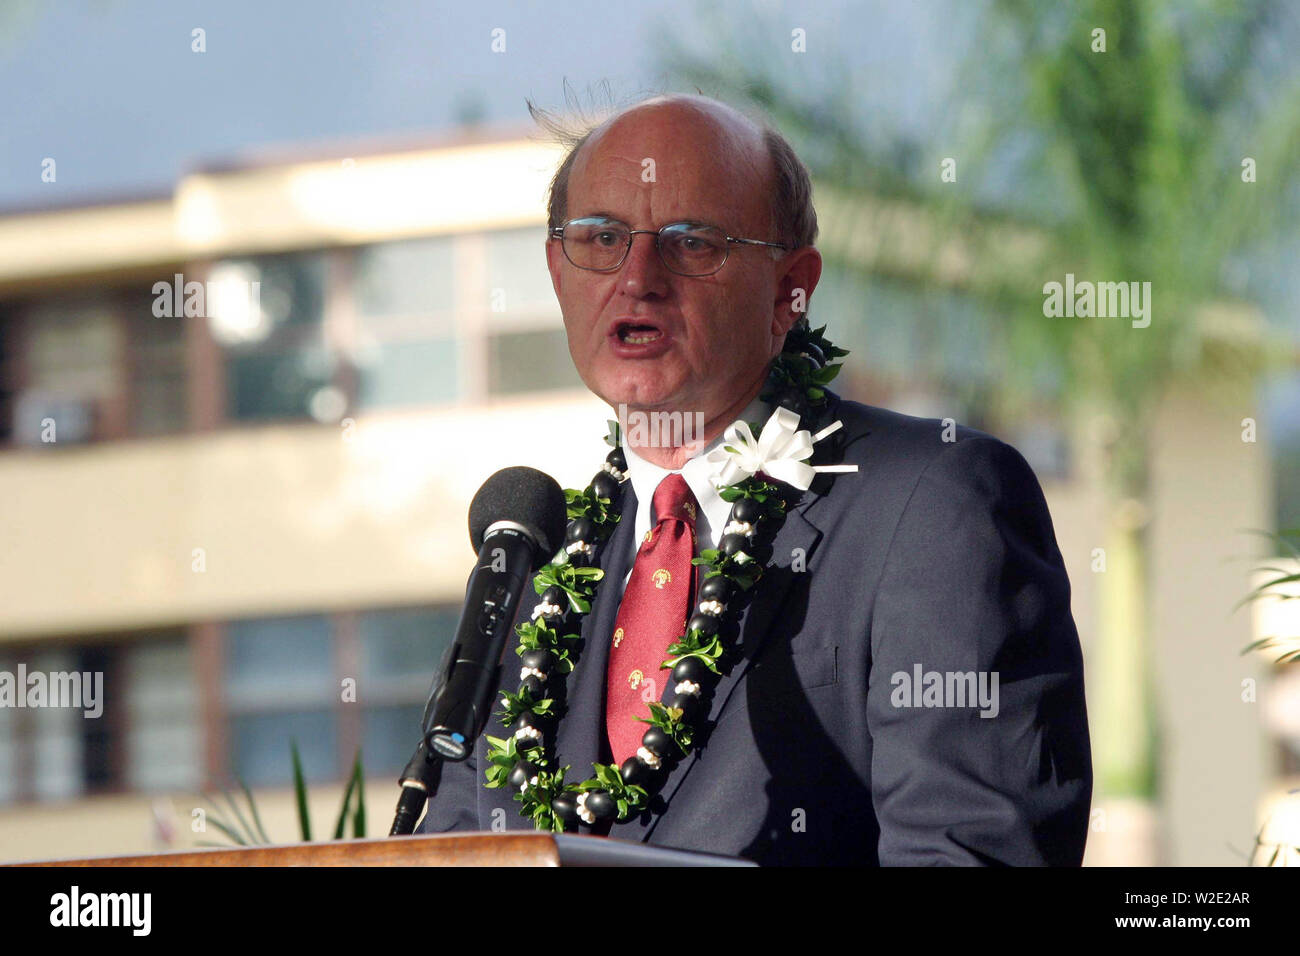 U.S. Marine Corps (Retired) Col. William J. Davis, head of the General Douglas MacArthur Foundation, gives a speech during the dedication ceremony of the newly built Nimitz-MacArthur Pacific Command Center (NMPCC) at Camp H. M. Smith, Hawaii, Apr. 14, 2004. Stock Photo